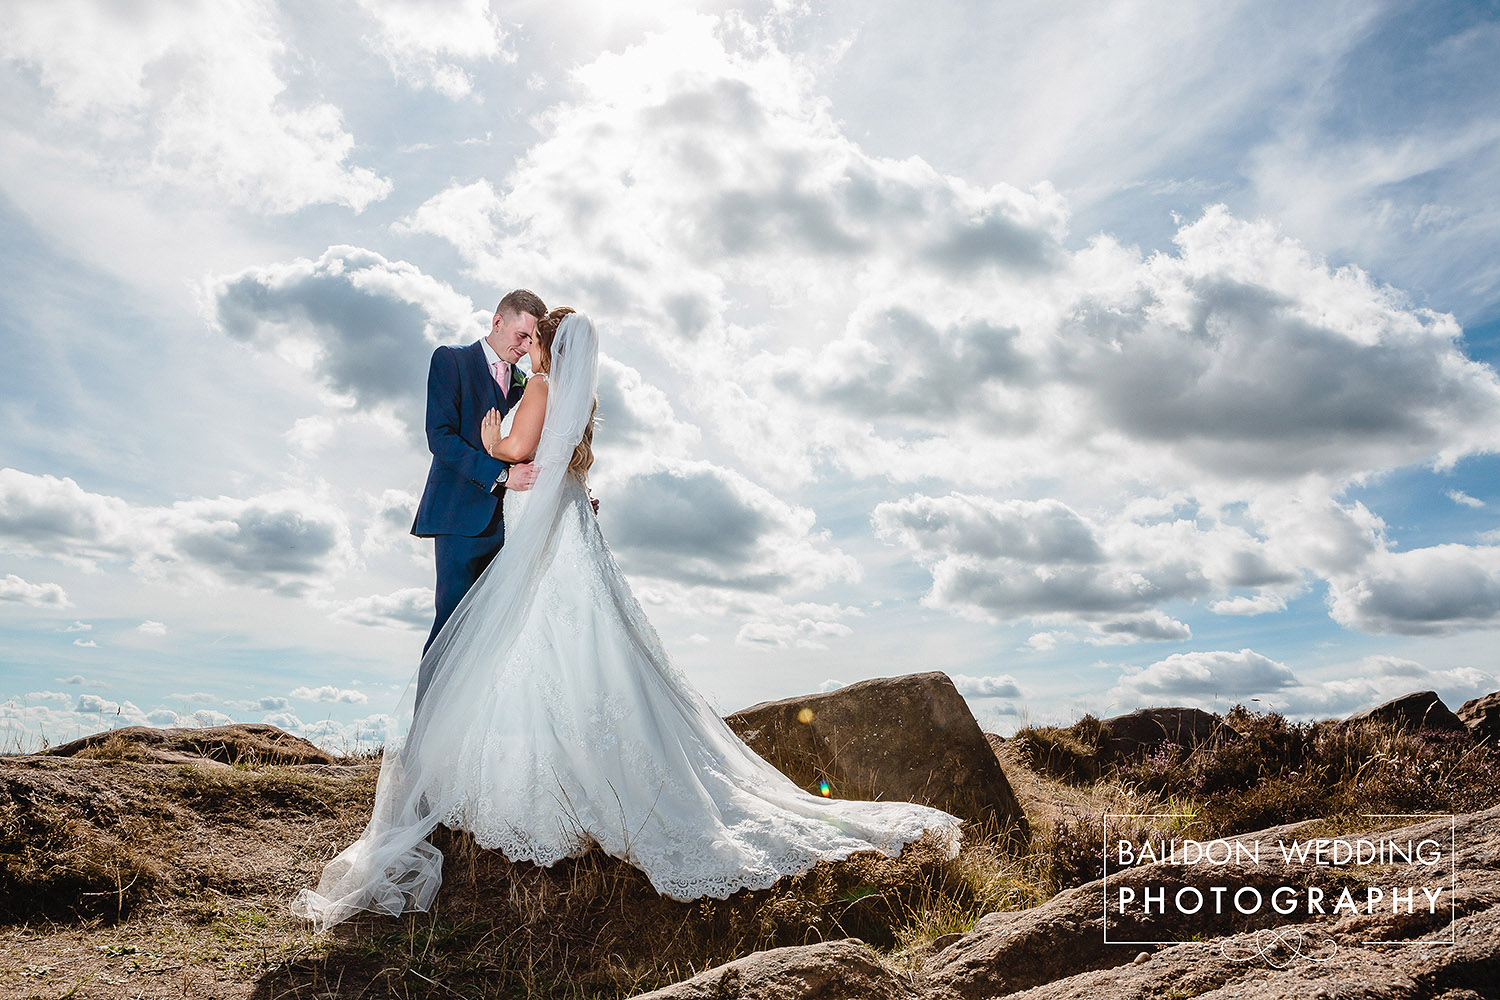 Newlyweds married at Leeds wedding venue Otley Chevin photographed with clouds